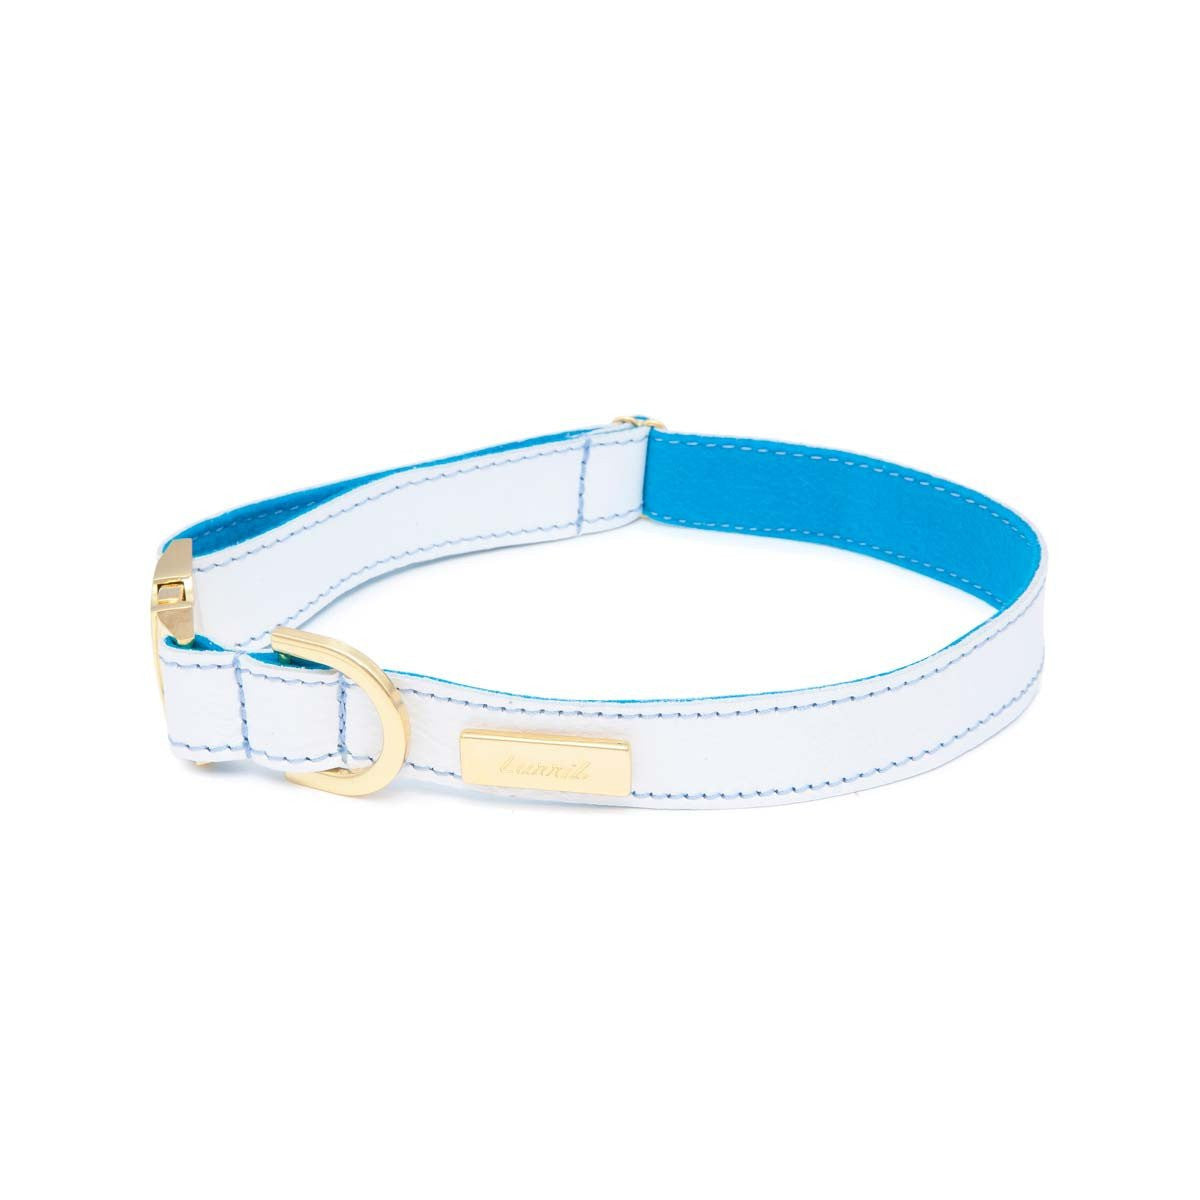 German Shepherd Dog Collar - Durable, Soft White Leather with Soft Wool Lining